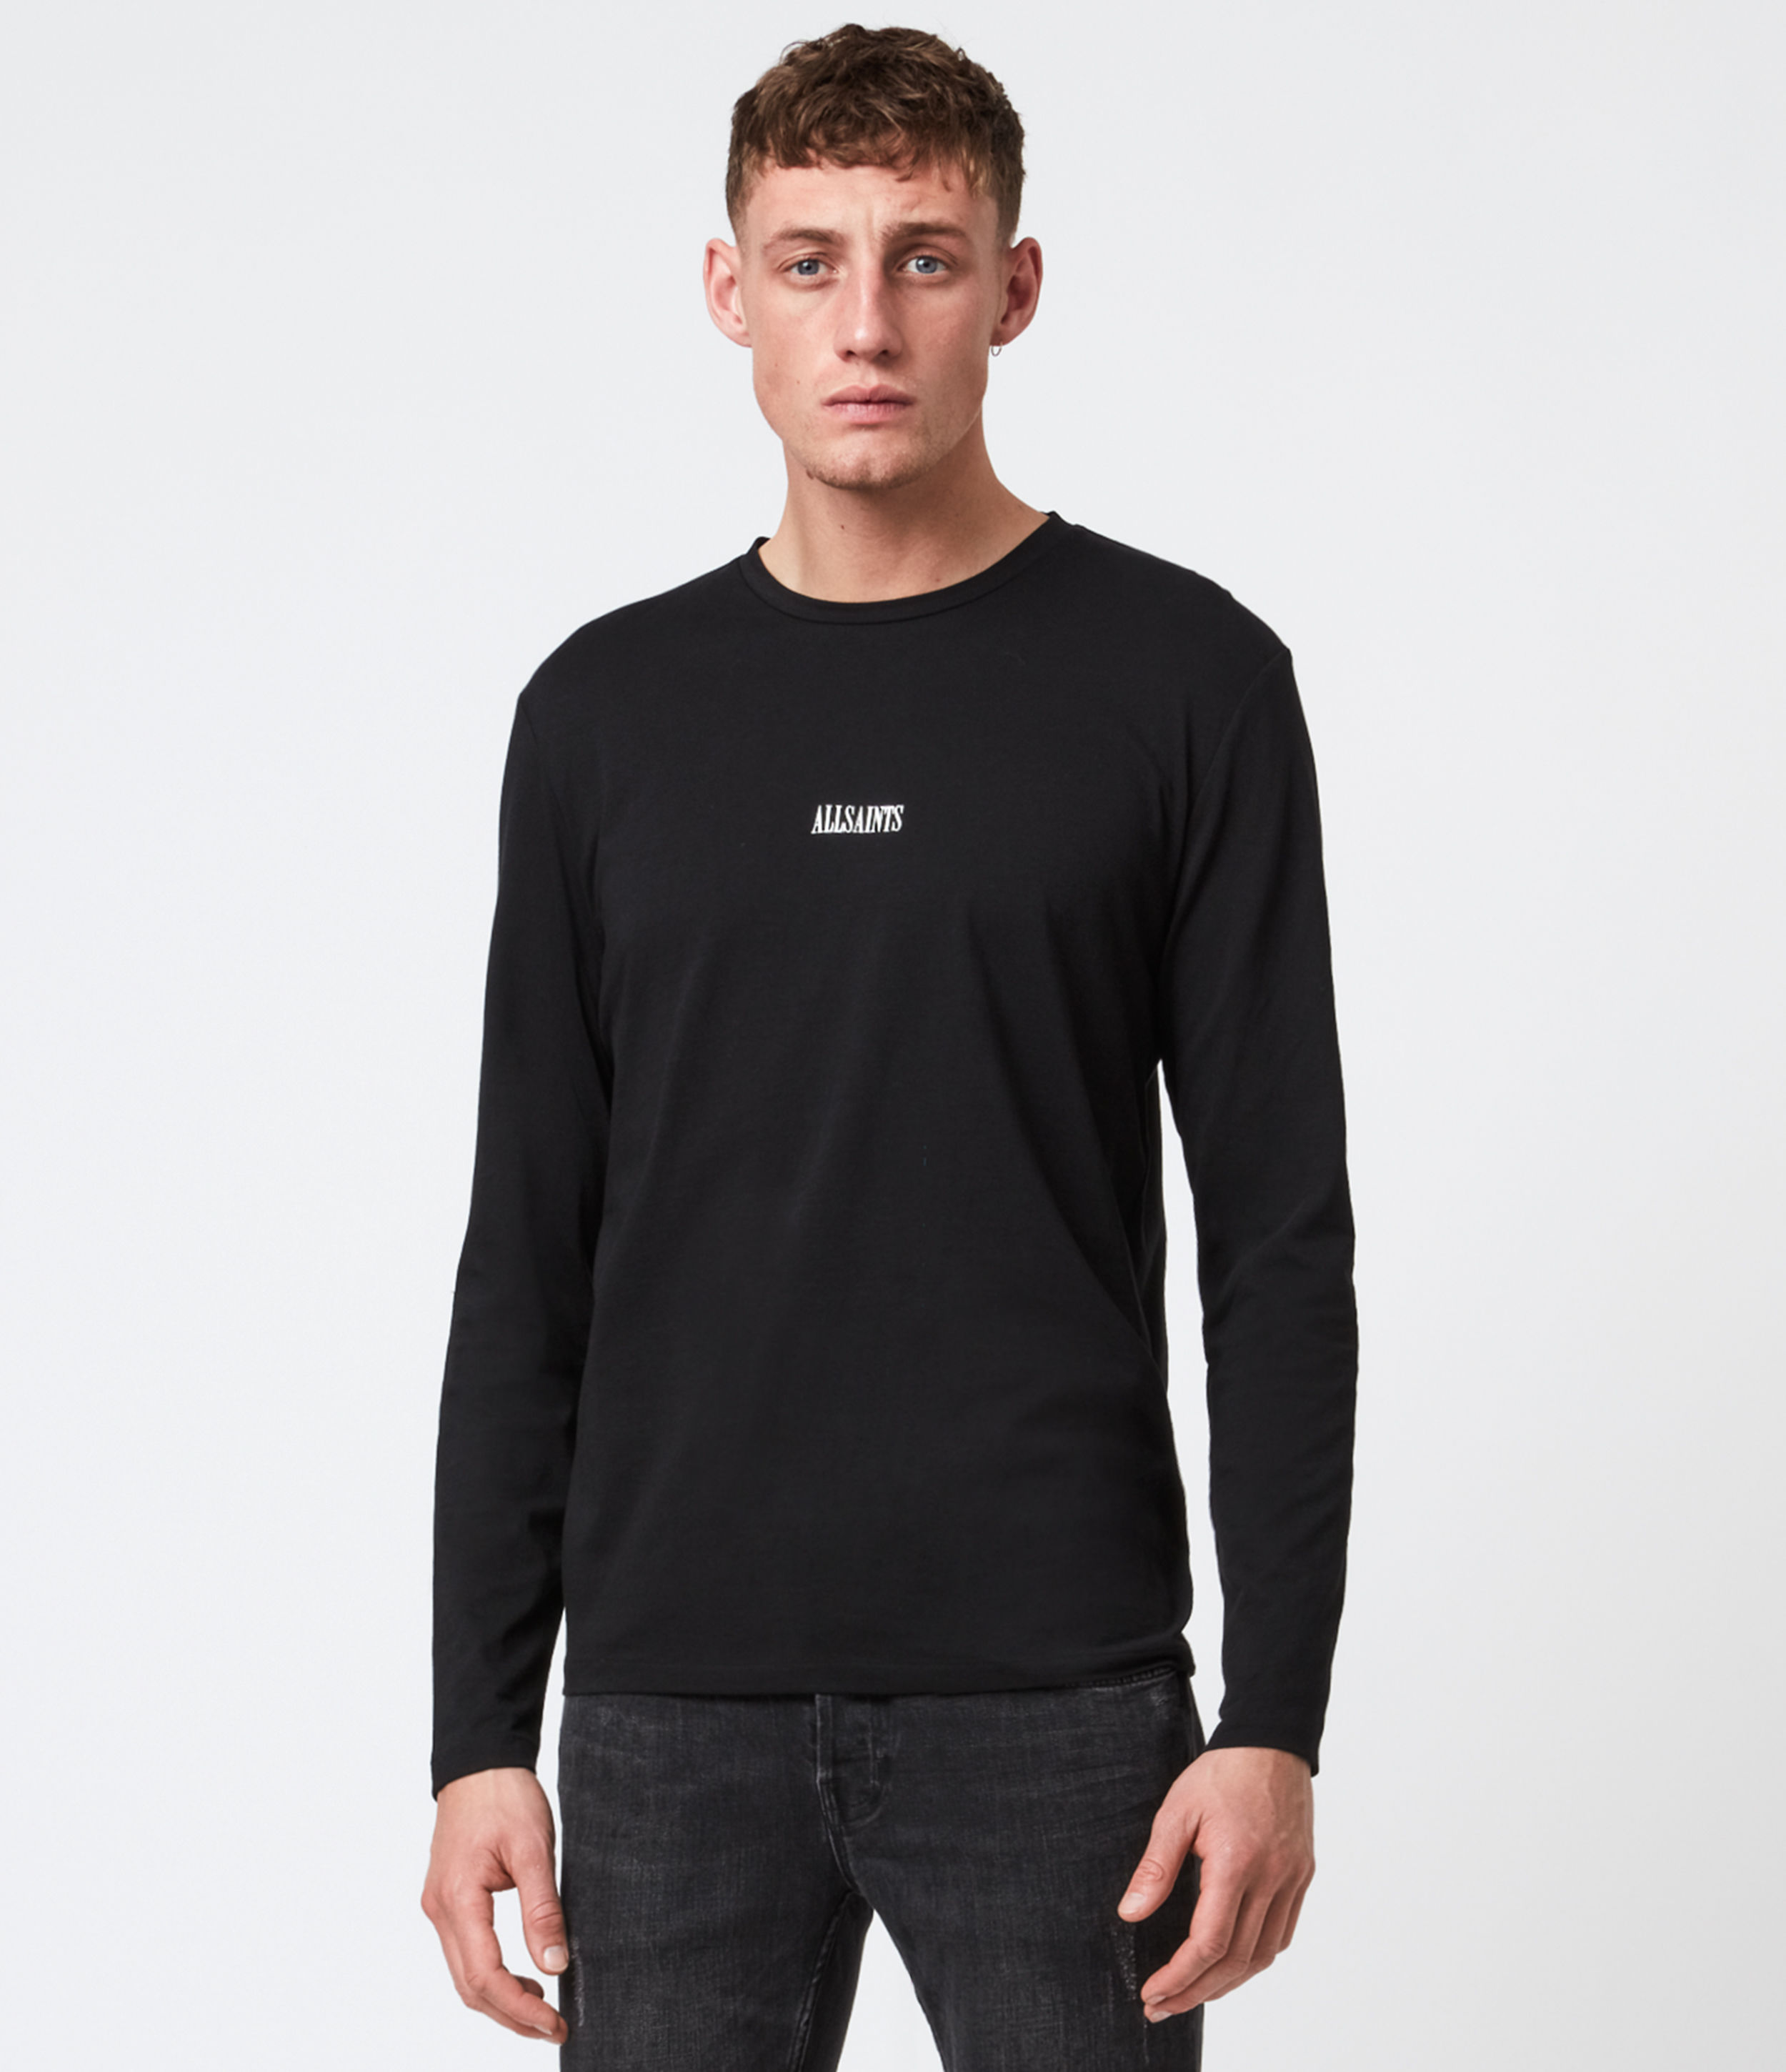 AllSaints State Long Sleeve Crew T-Shirt